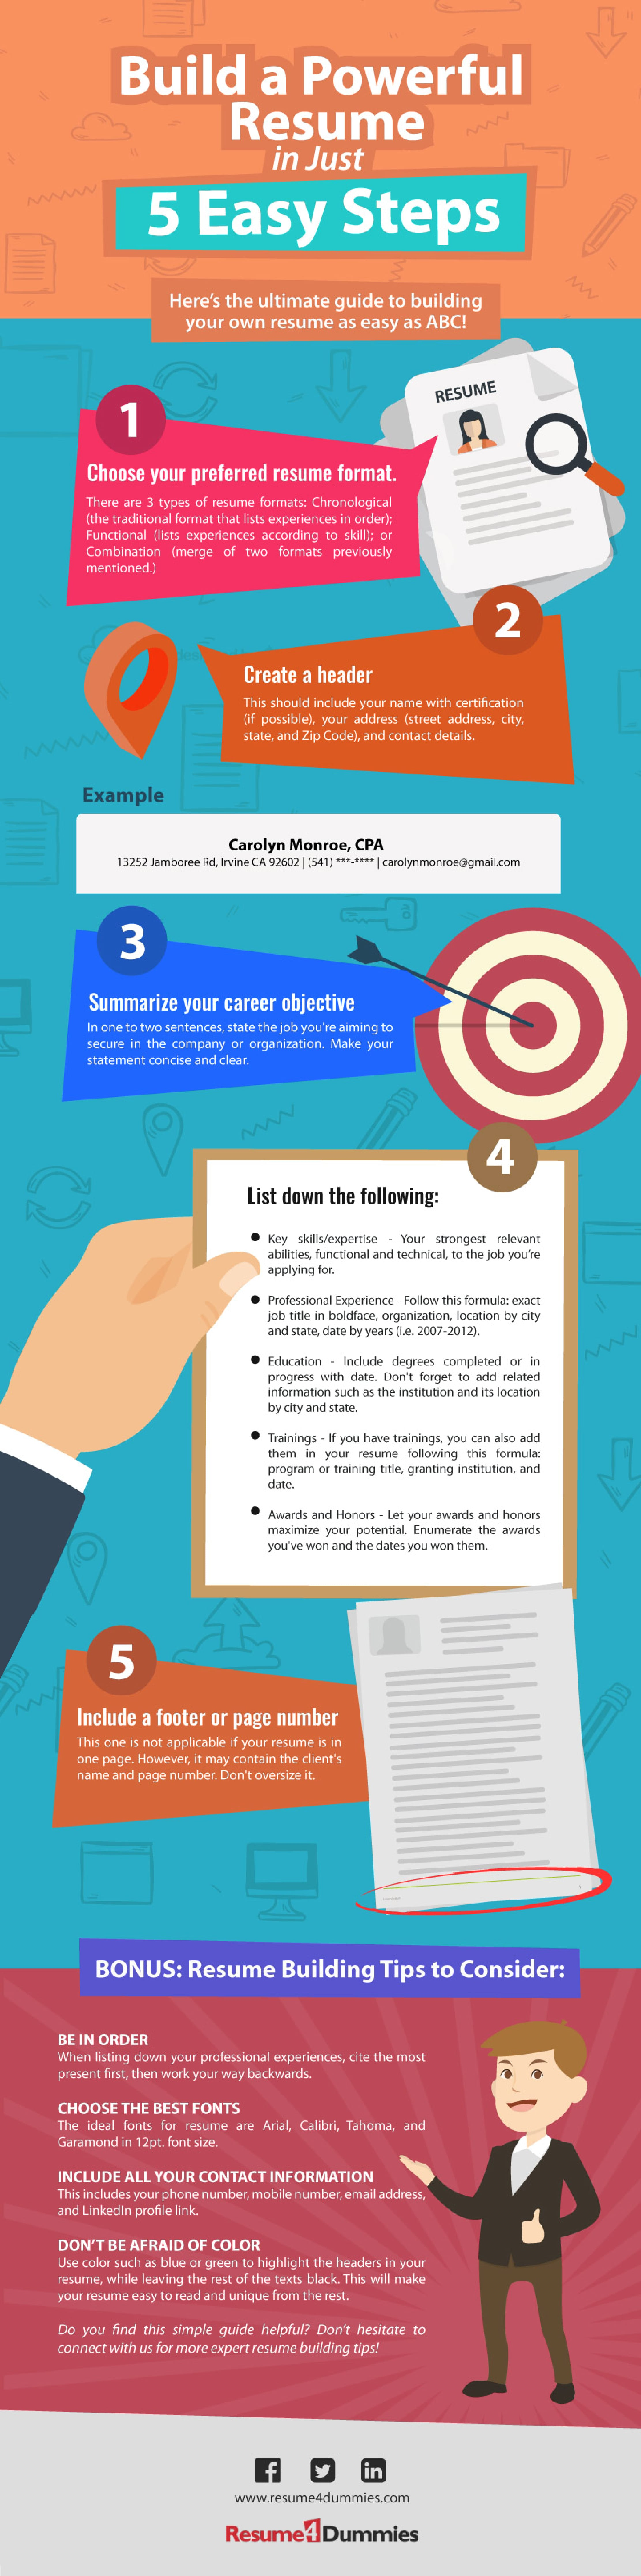 Build a Powerful Resume in Just 5 Easy Steps - Resume4Dummies (Infographic)